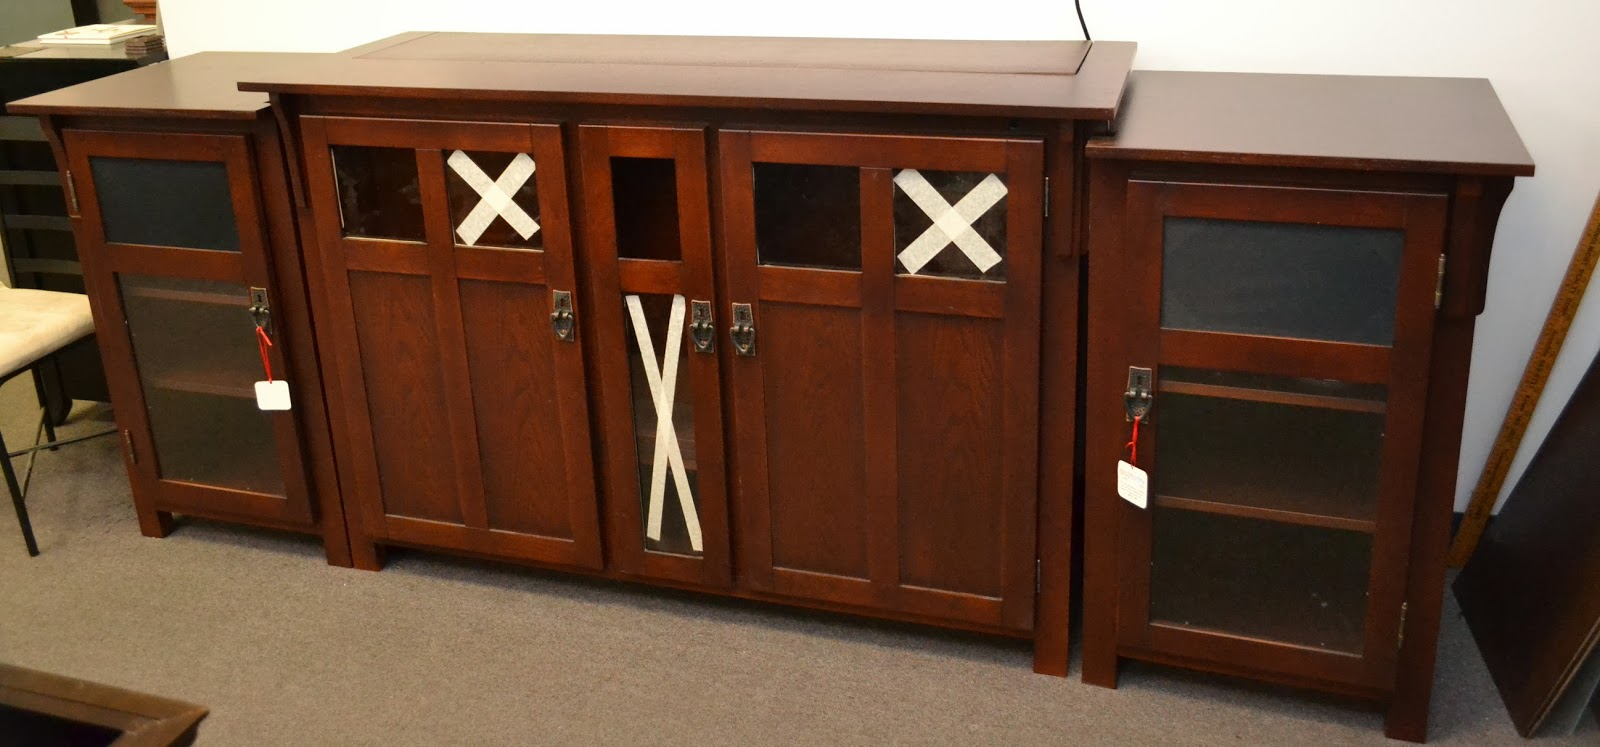 check out all of the unfinished and custom finished tv lift cabinets at wwwthpuscom